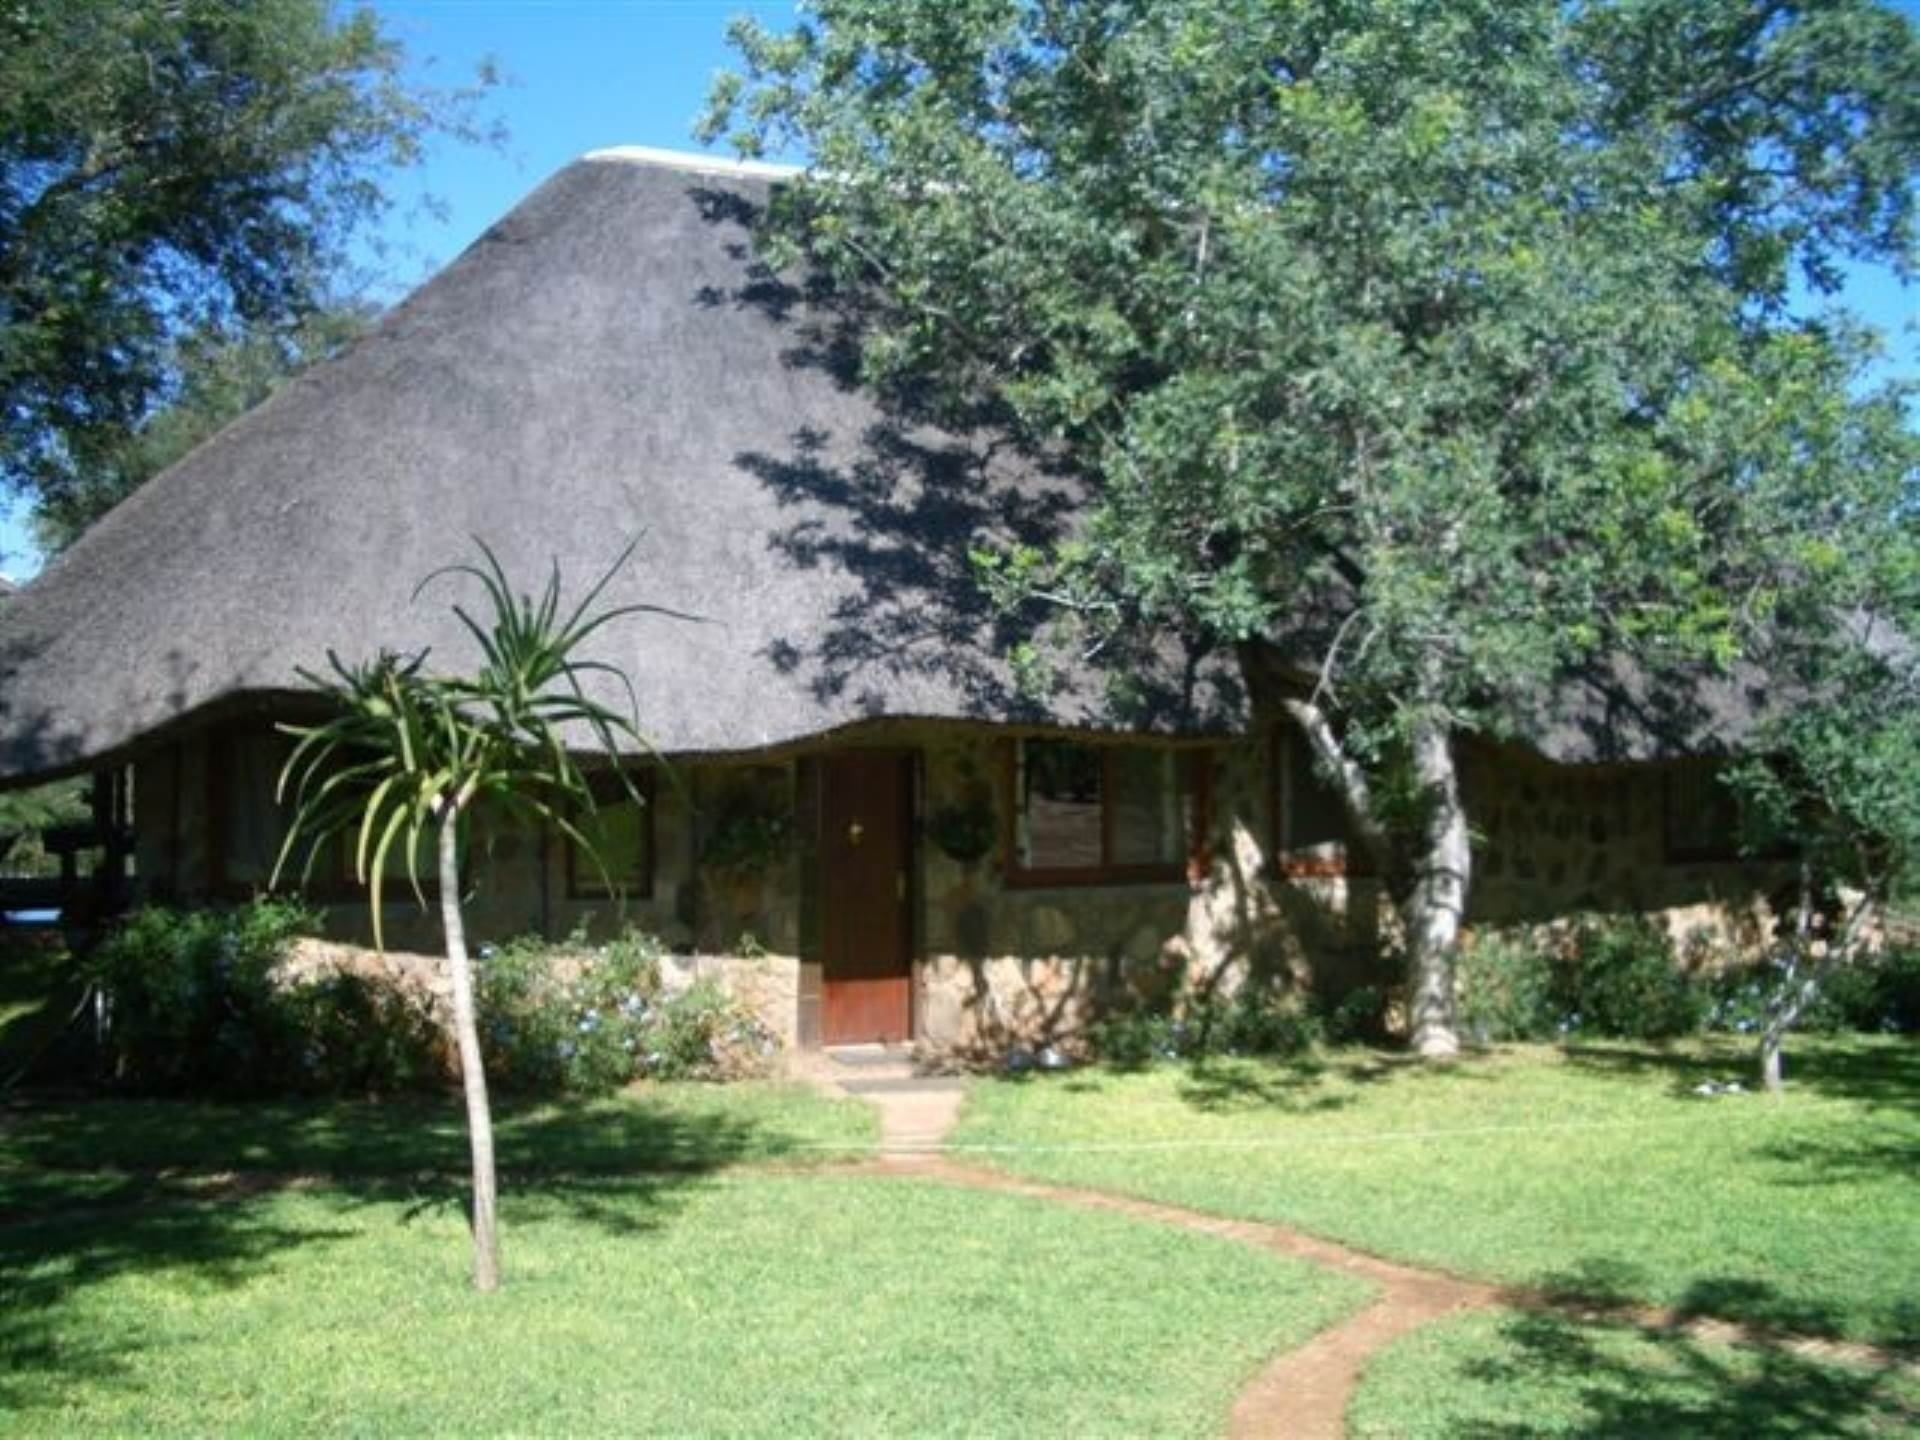 4 BedroomHouse For Sale In Ndlovumzi Nature Reserve